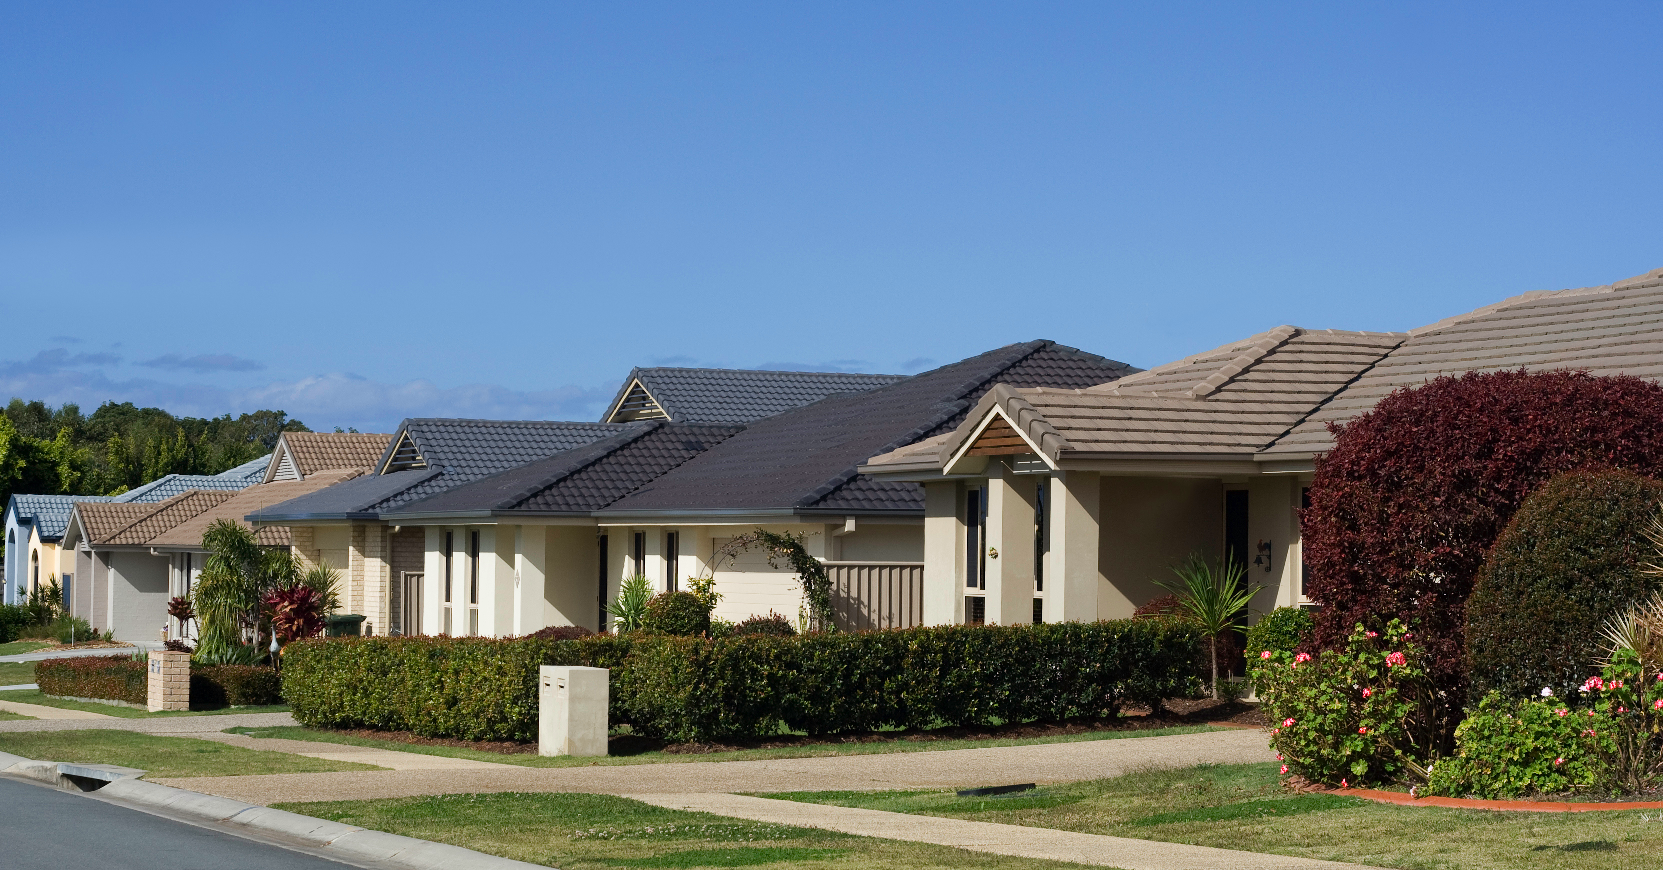 Tips for Choosing a House and Land Package